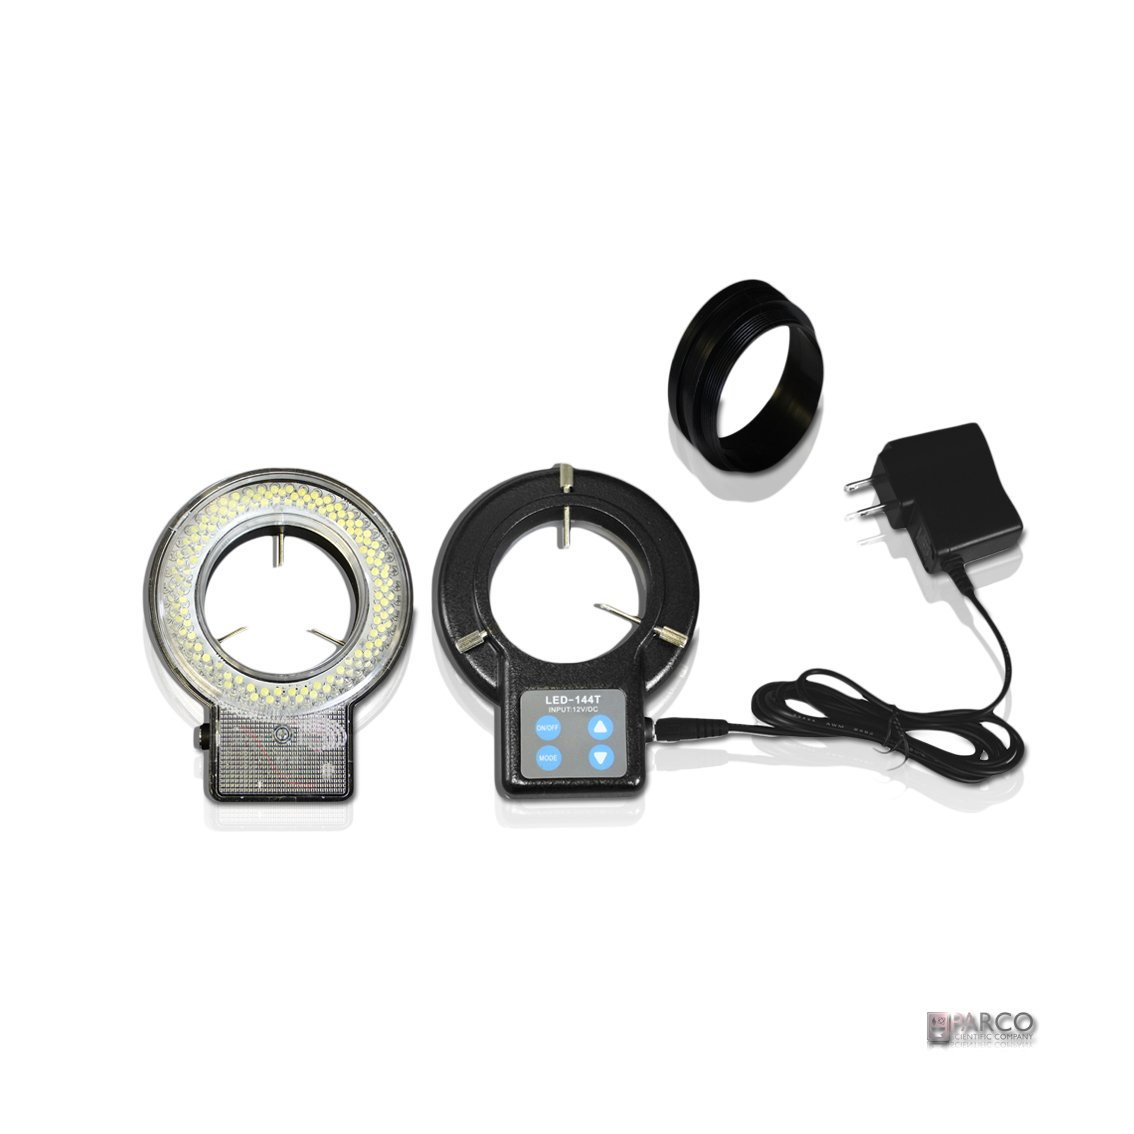 Parco Scientific PMLIFR-08 144-LED Four-Zone Light with Intensity Control by Parco Scientific